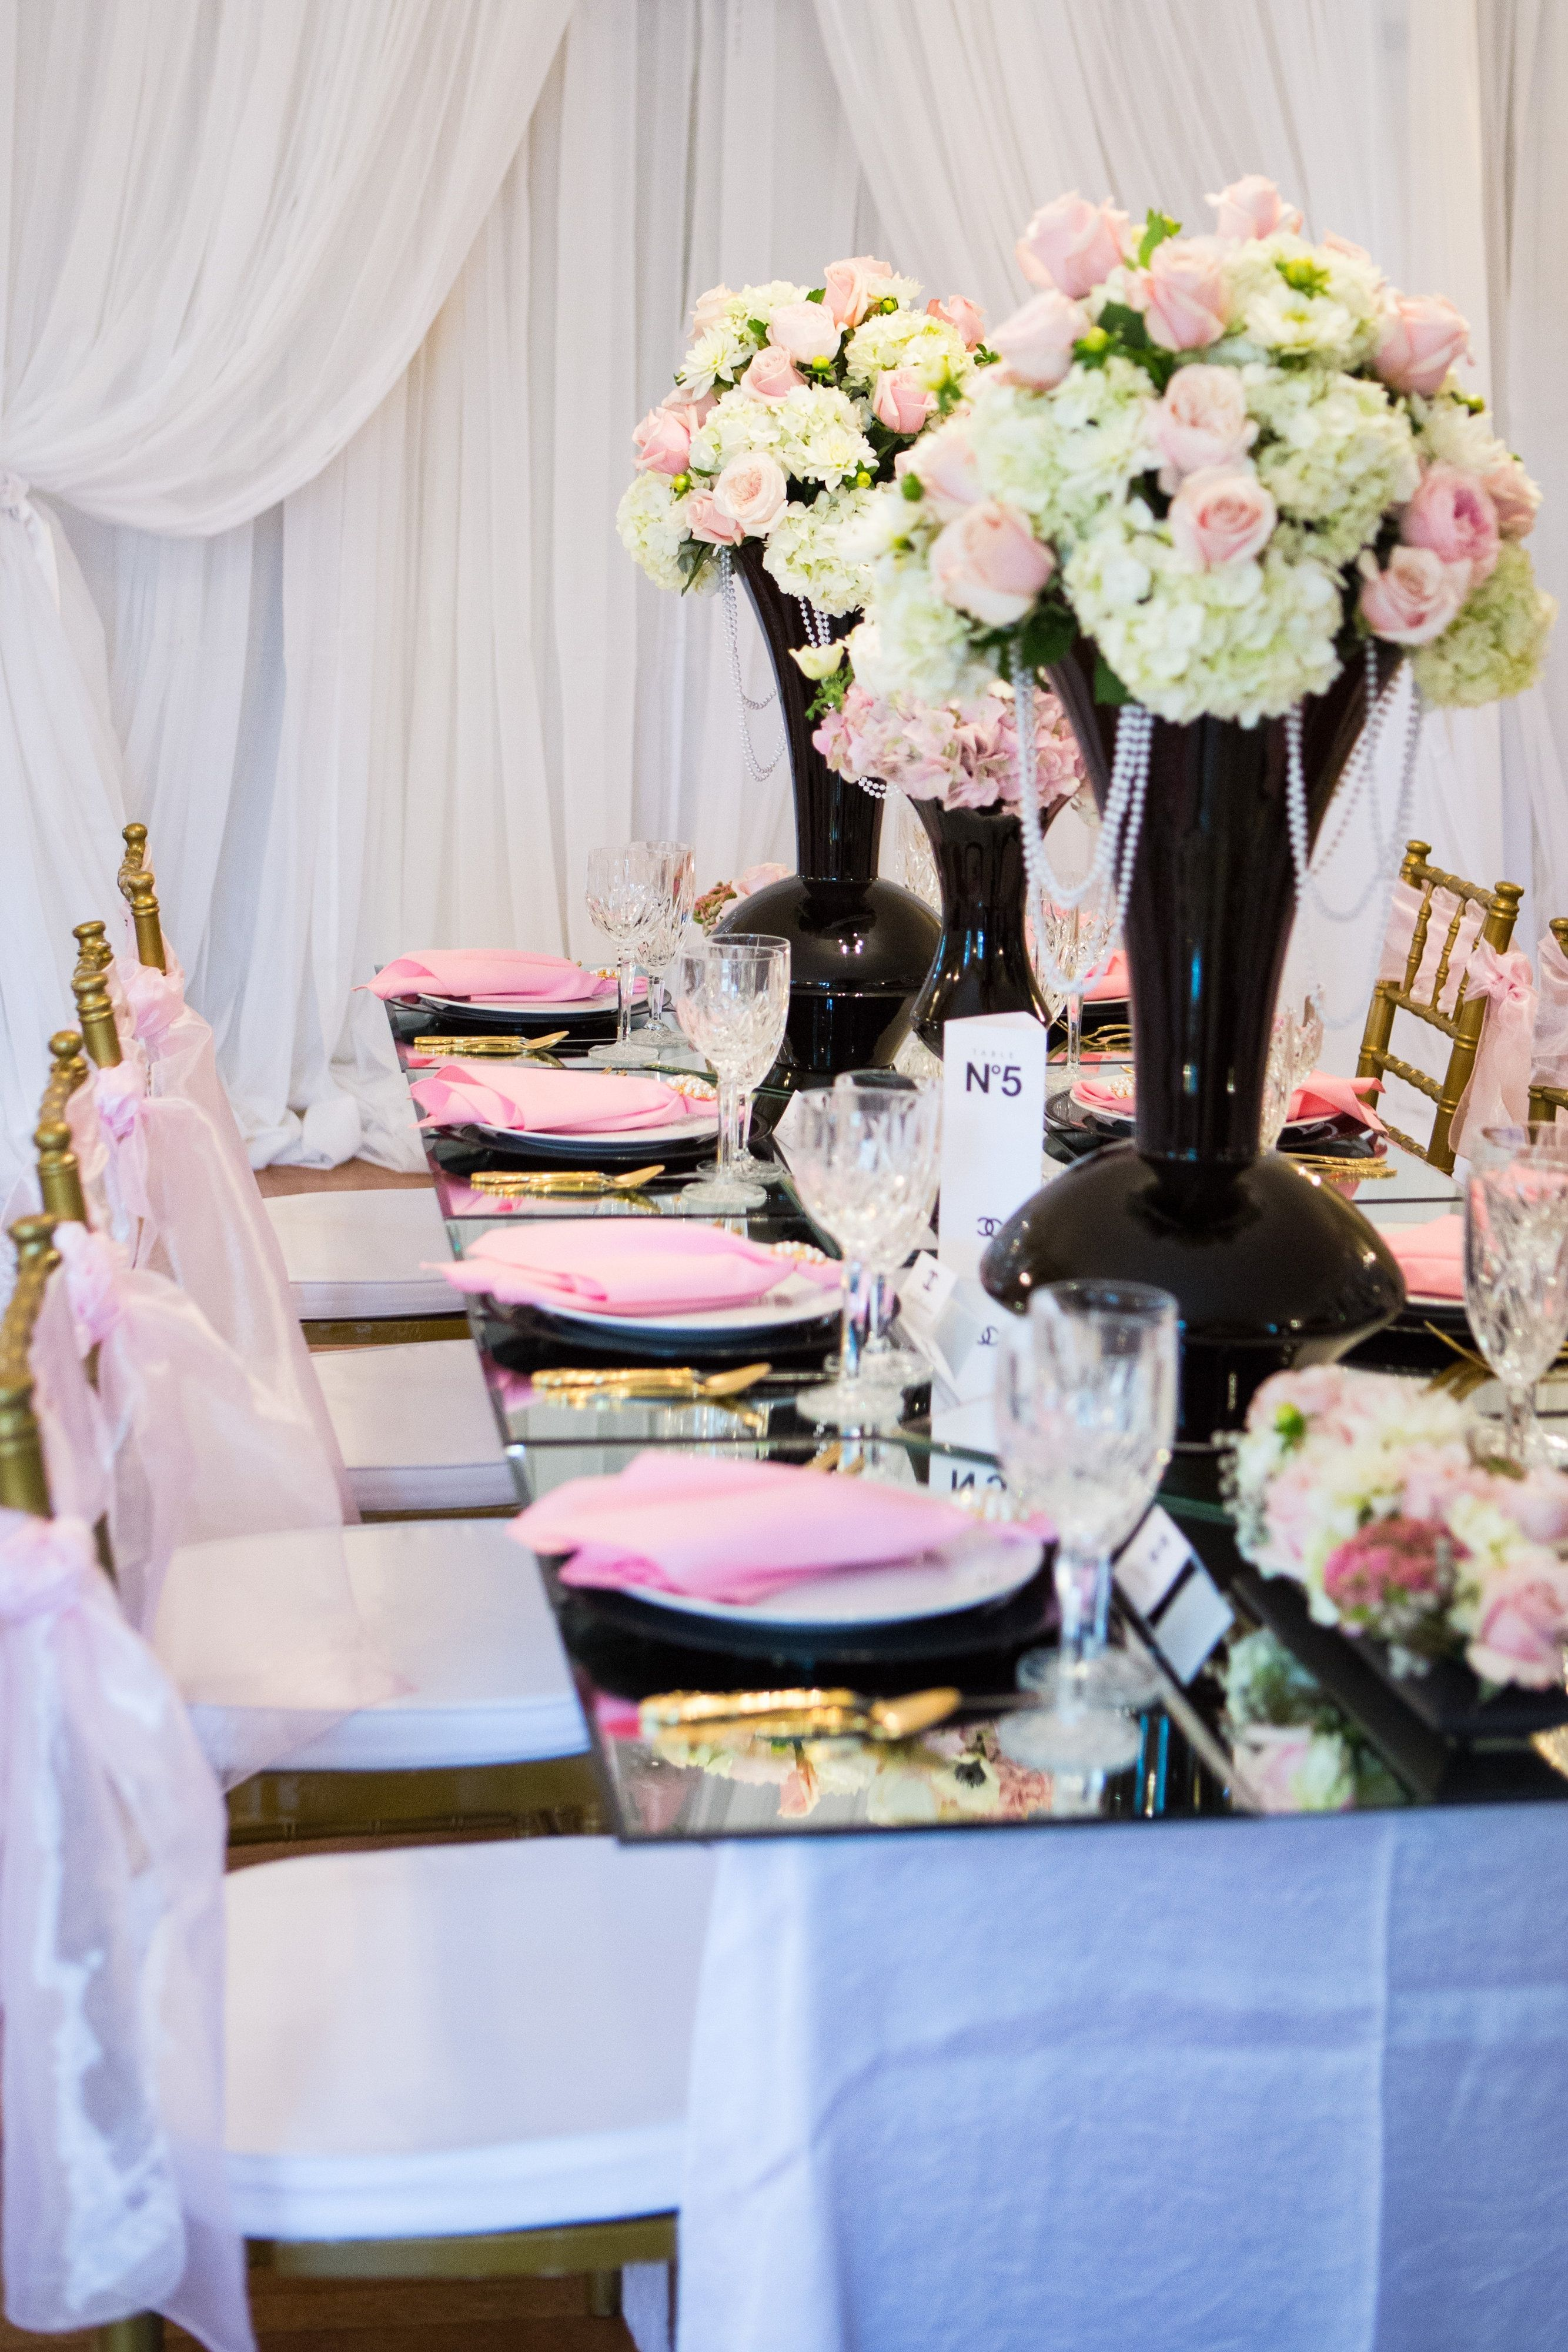 Pin by Christell's Flowers on Chanel Inspired Wedding | Pink black weddings,  Bride blog, Wedding bride